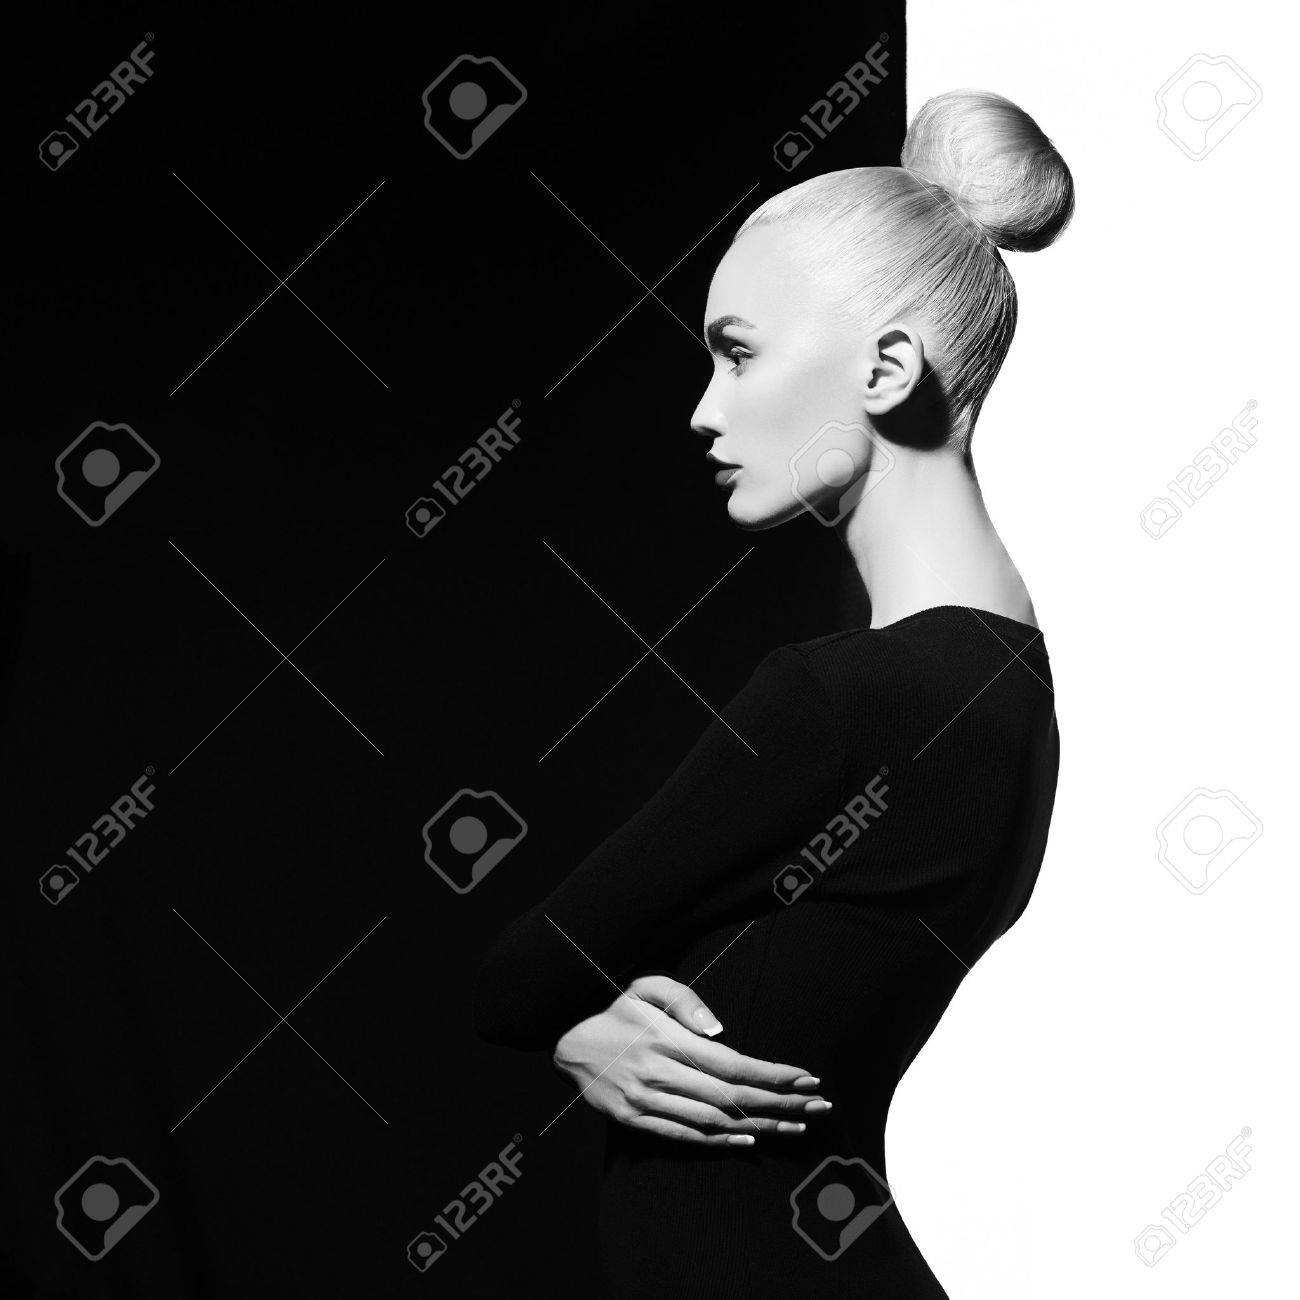 Fashion art studio portrait of elegant blode in geometric black